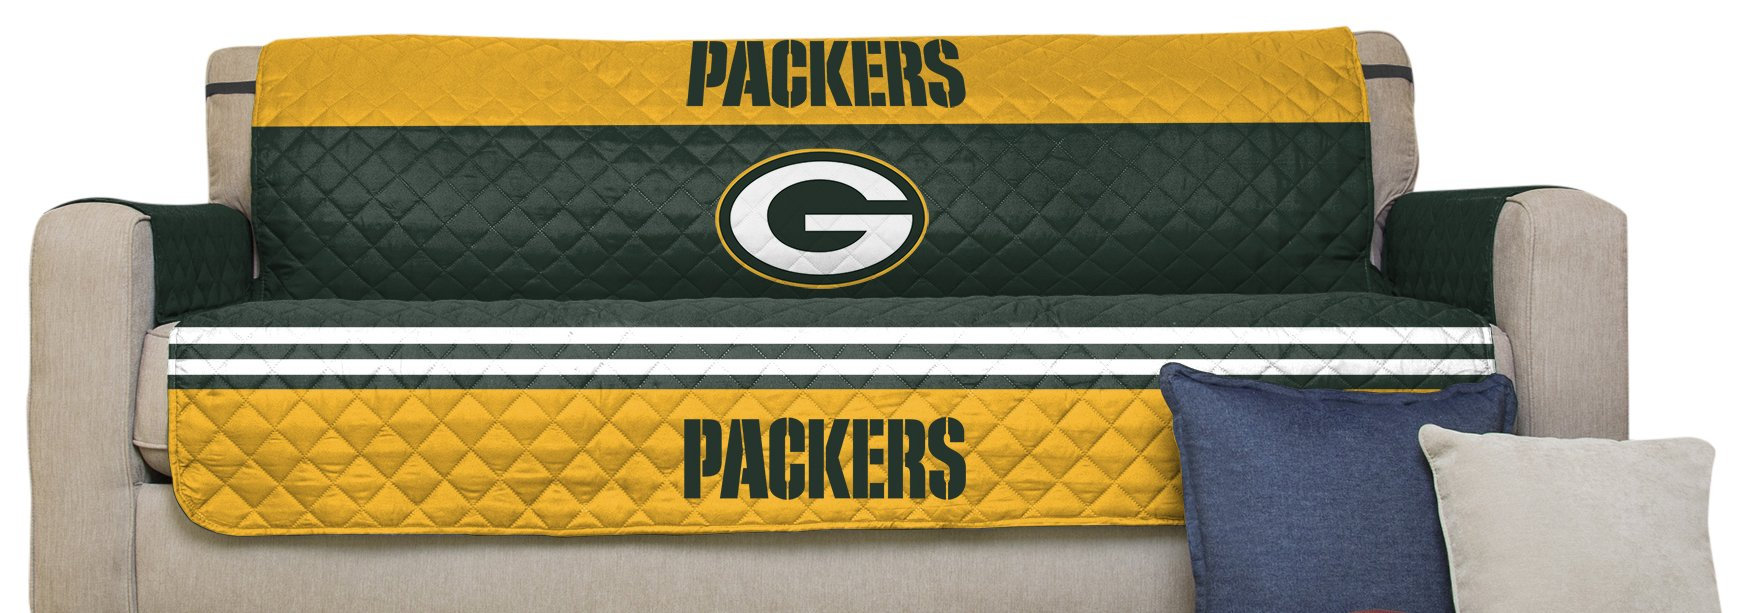 Pegasus Home Fashions NFL Furniture Protector with Elastic Straps, Sofa, Green Bay Packers